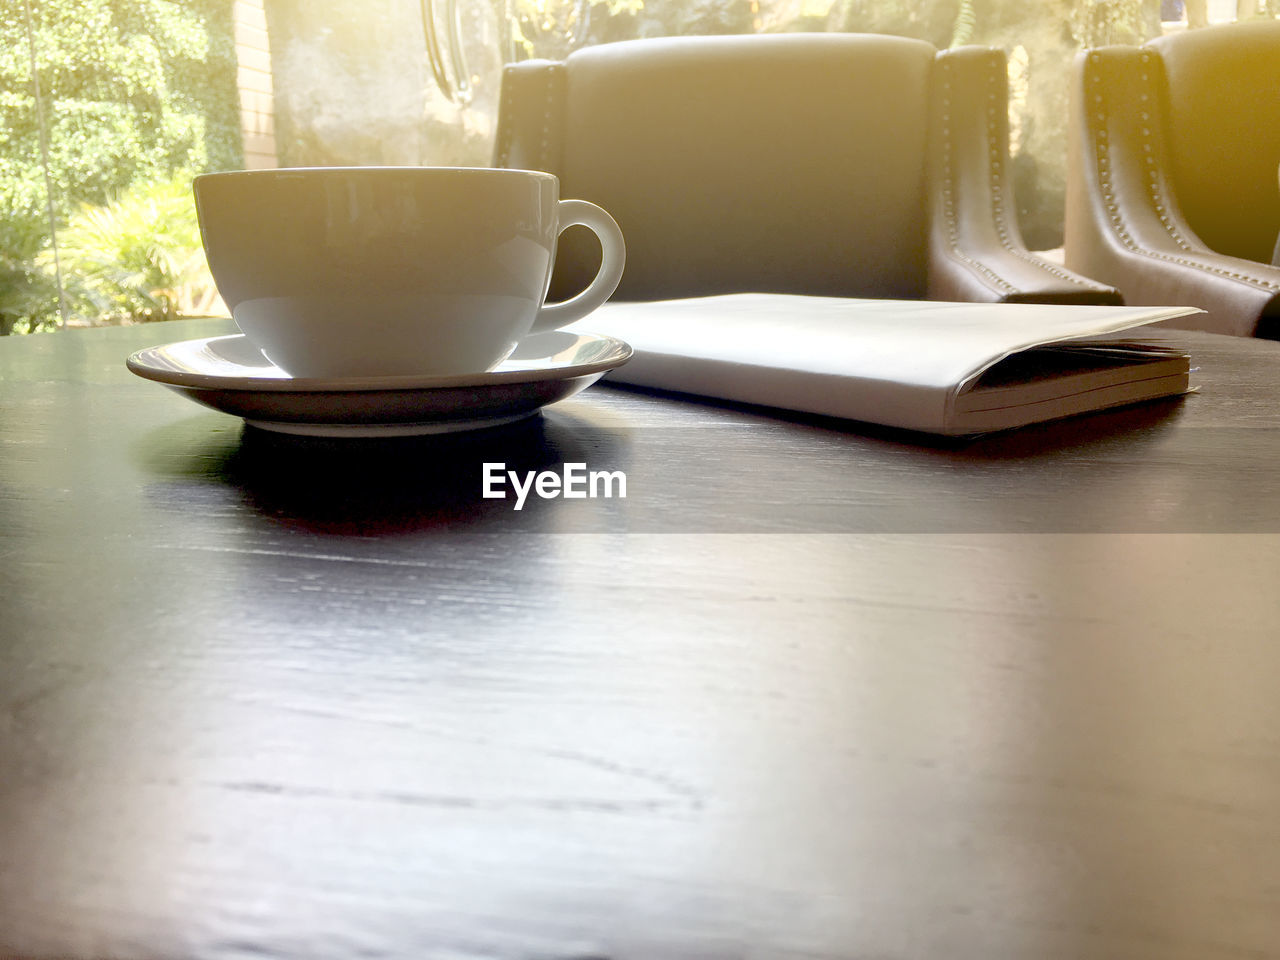 cup, table, mug, food and drink, coffee cup, still life, indoors, drink, saucer, crockery, no people, coffee, refreshment, coffee - drink, tea cup, close-up, kitchen utensil, ceramics, day, eating utensil, surface level